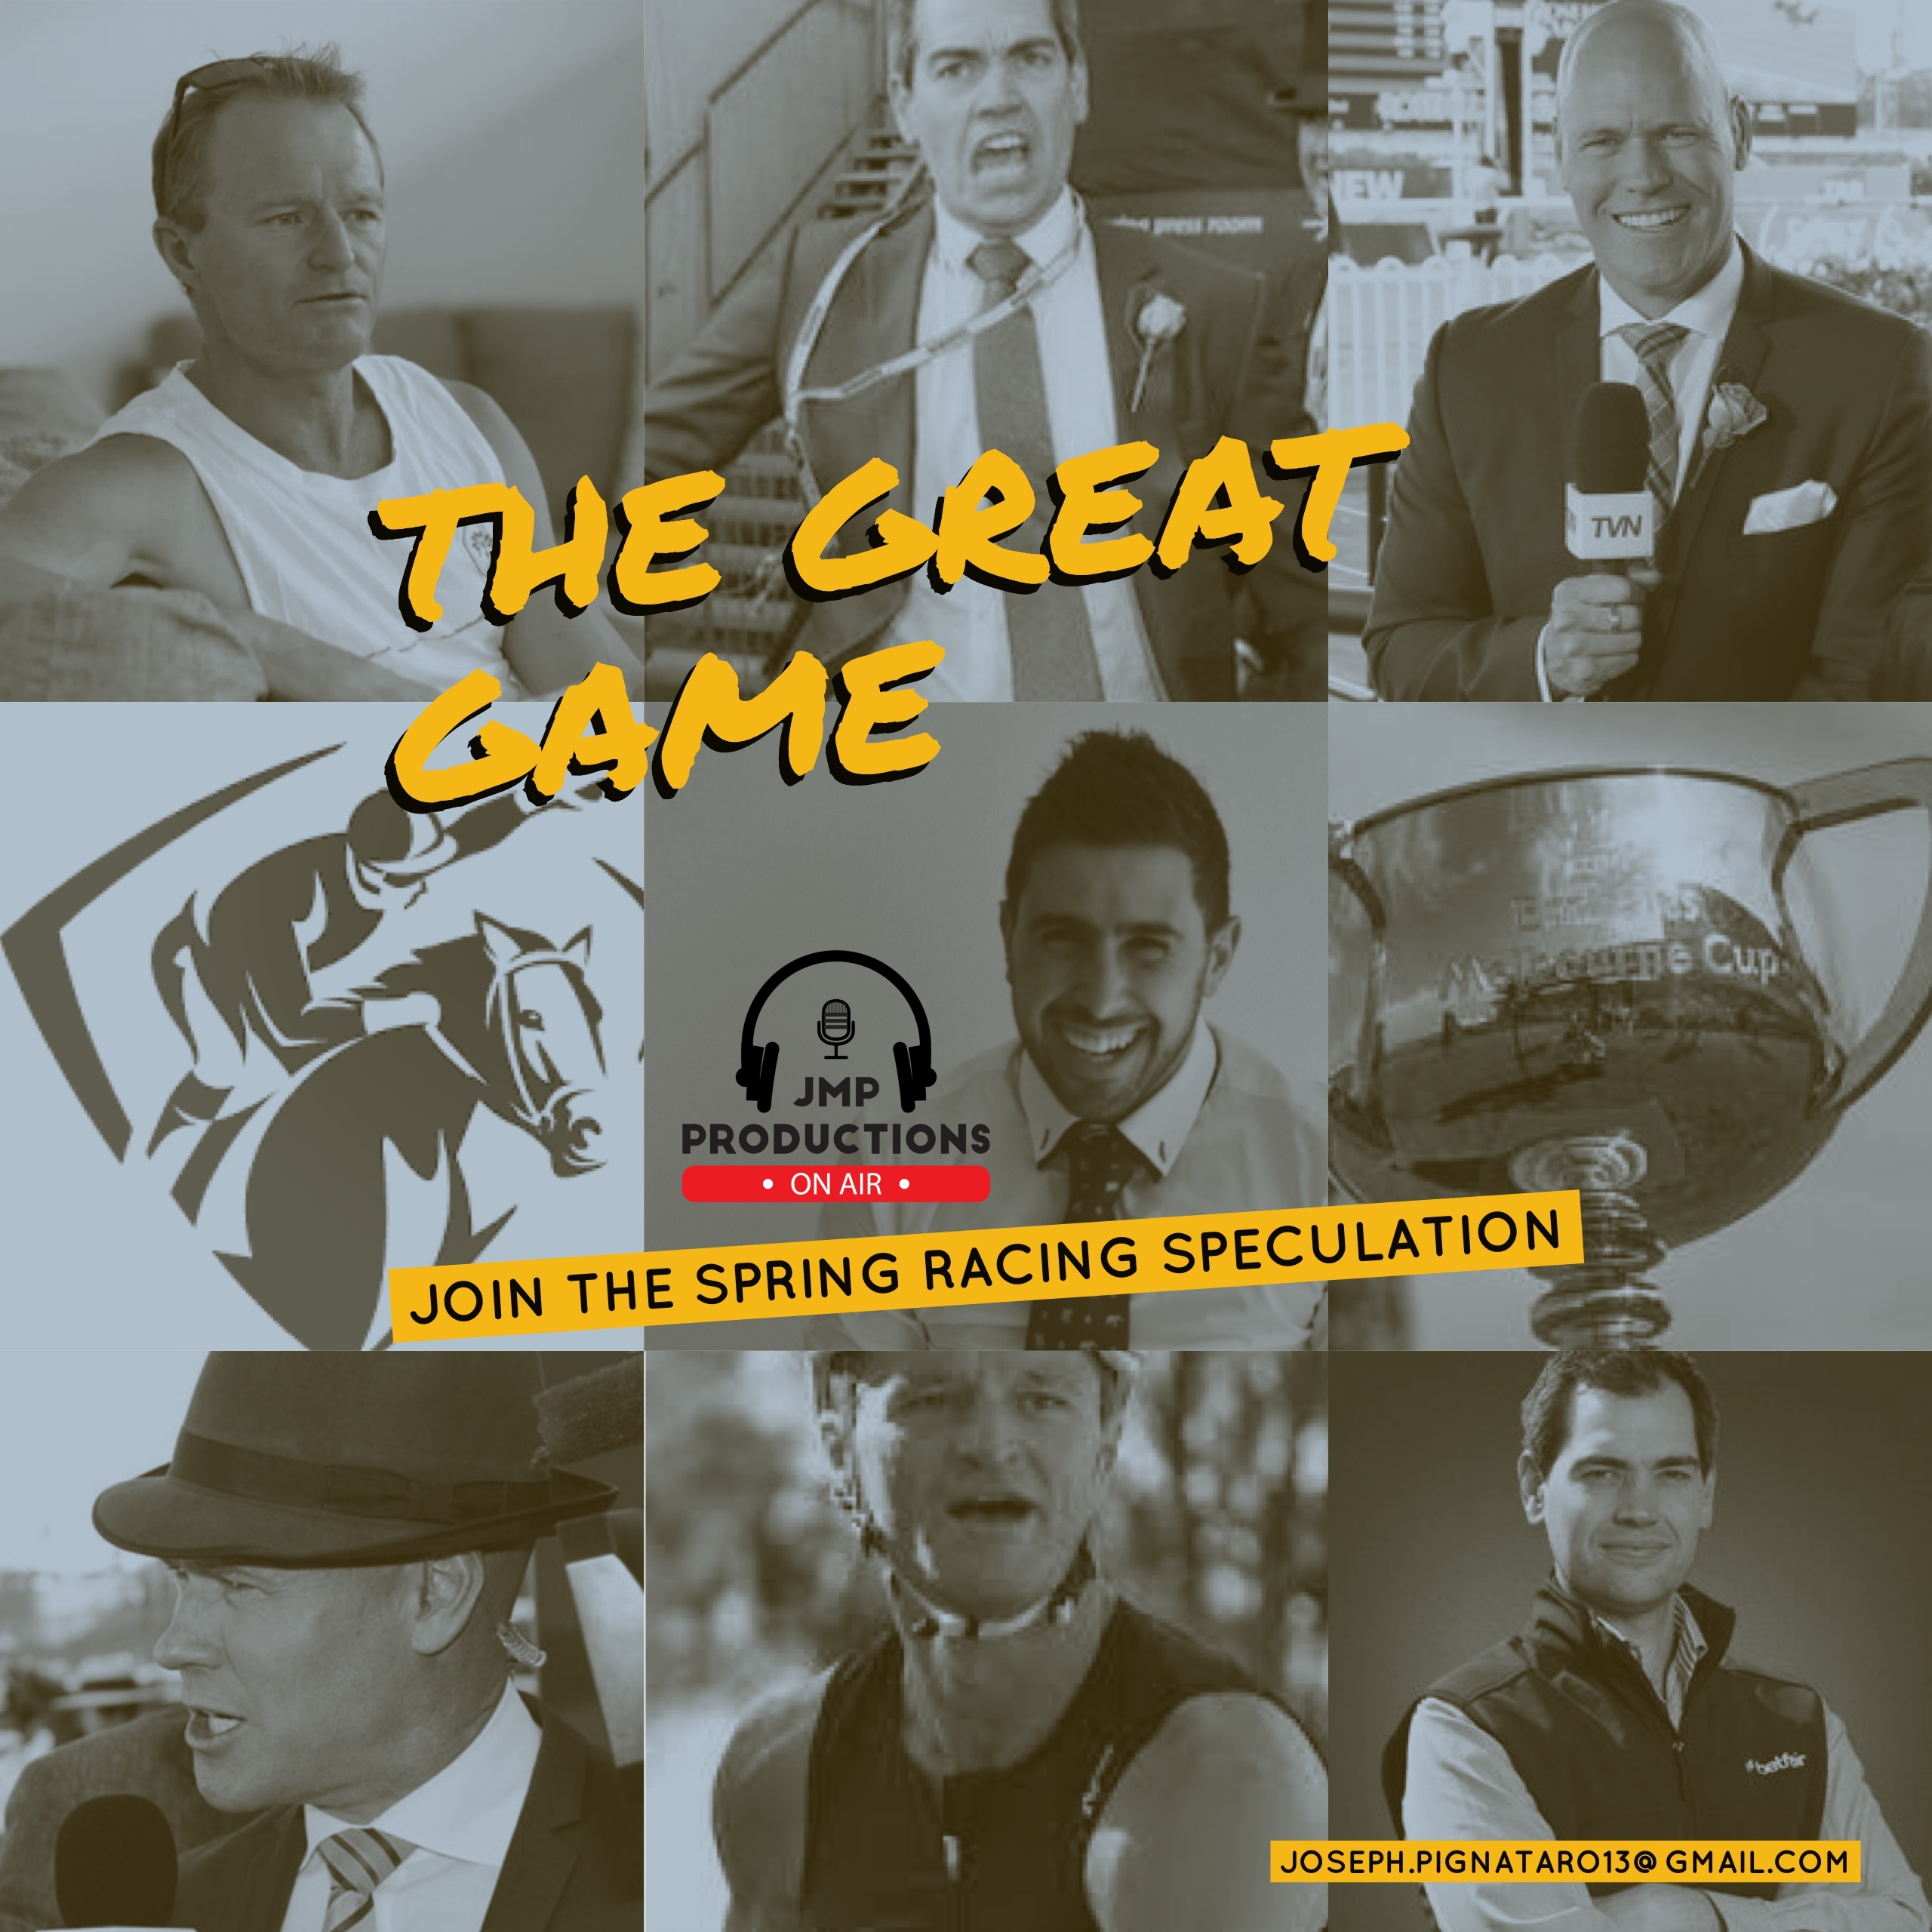 Episode 21 - The Great Game (May 16, 2019)